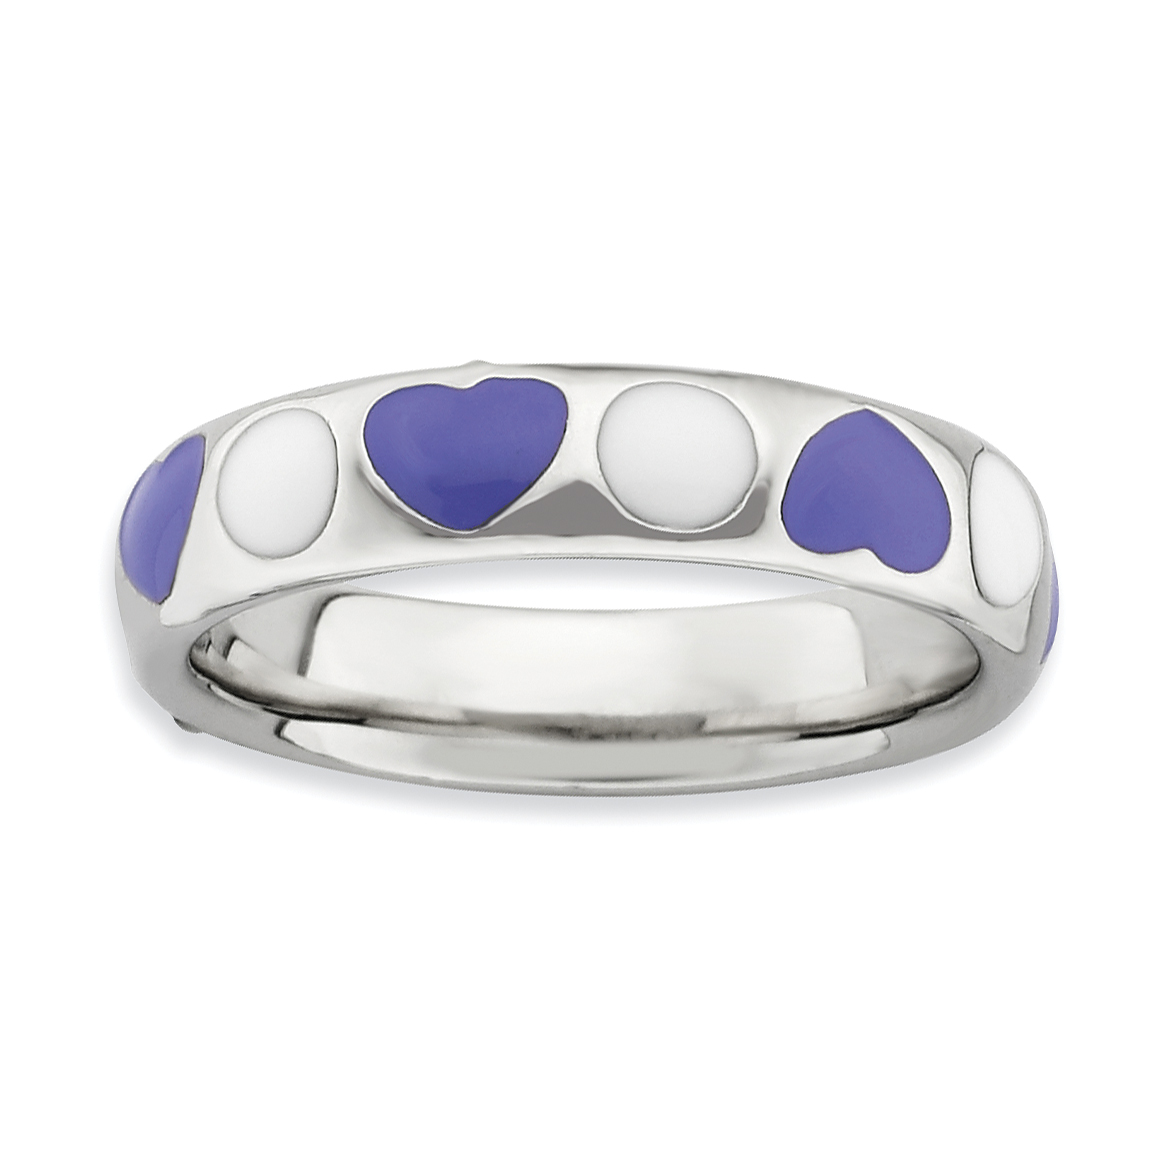 Roy Rose Jewelry Sterling Silver Stackable Expressions Polished Purple/White Enameled Ring ~ Size 8